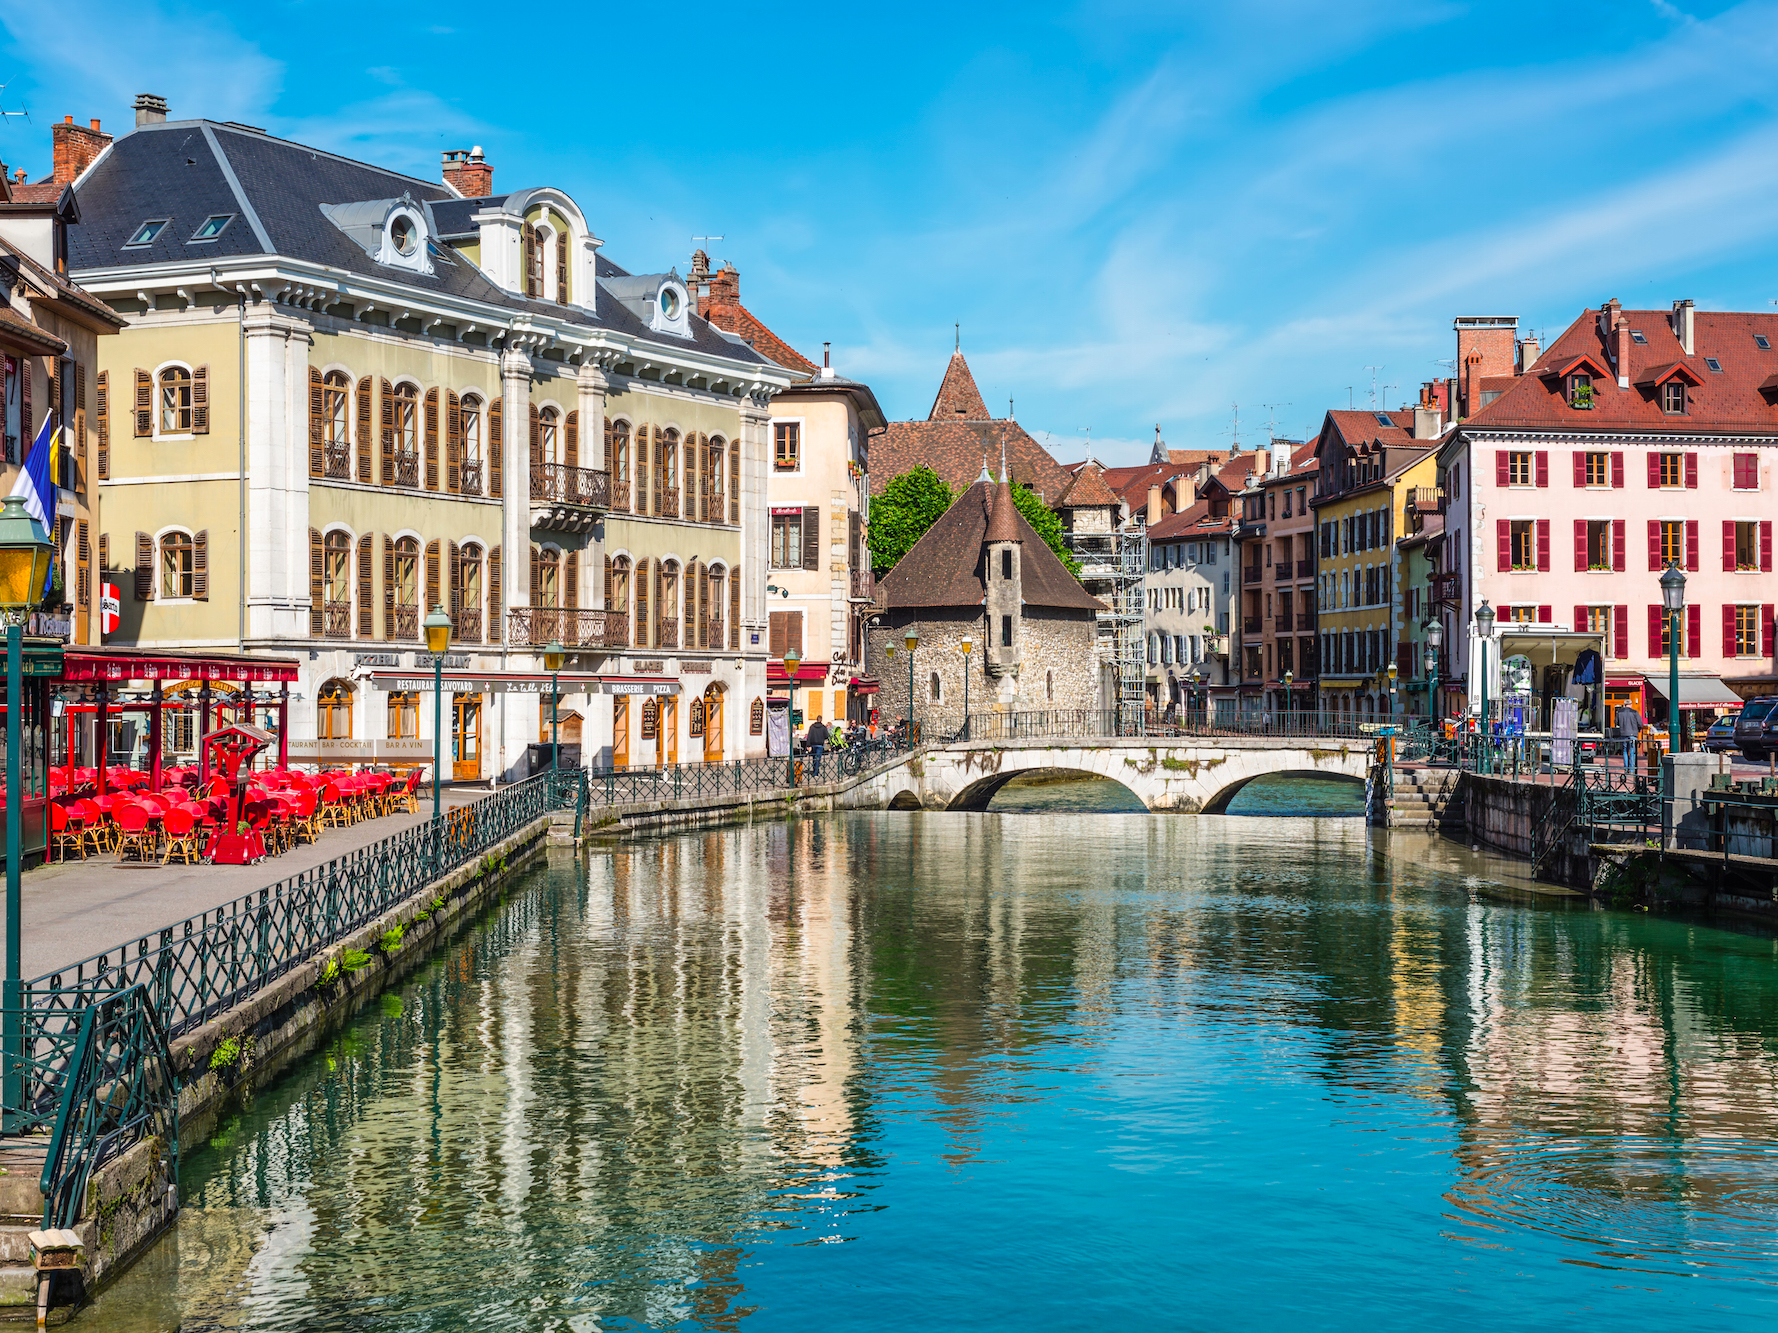 In the old town of Annecy, France, travelers are greeted by pastel-painted houses and cafes lining a lovely lakeshore. Hang out at one of its many outdoor eateries, cycle along the water, or admire historical sites like the Château d'Annecy.